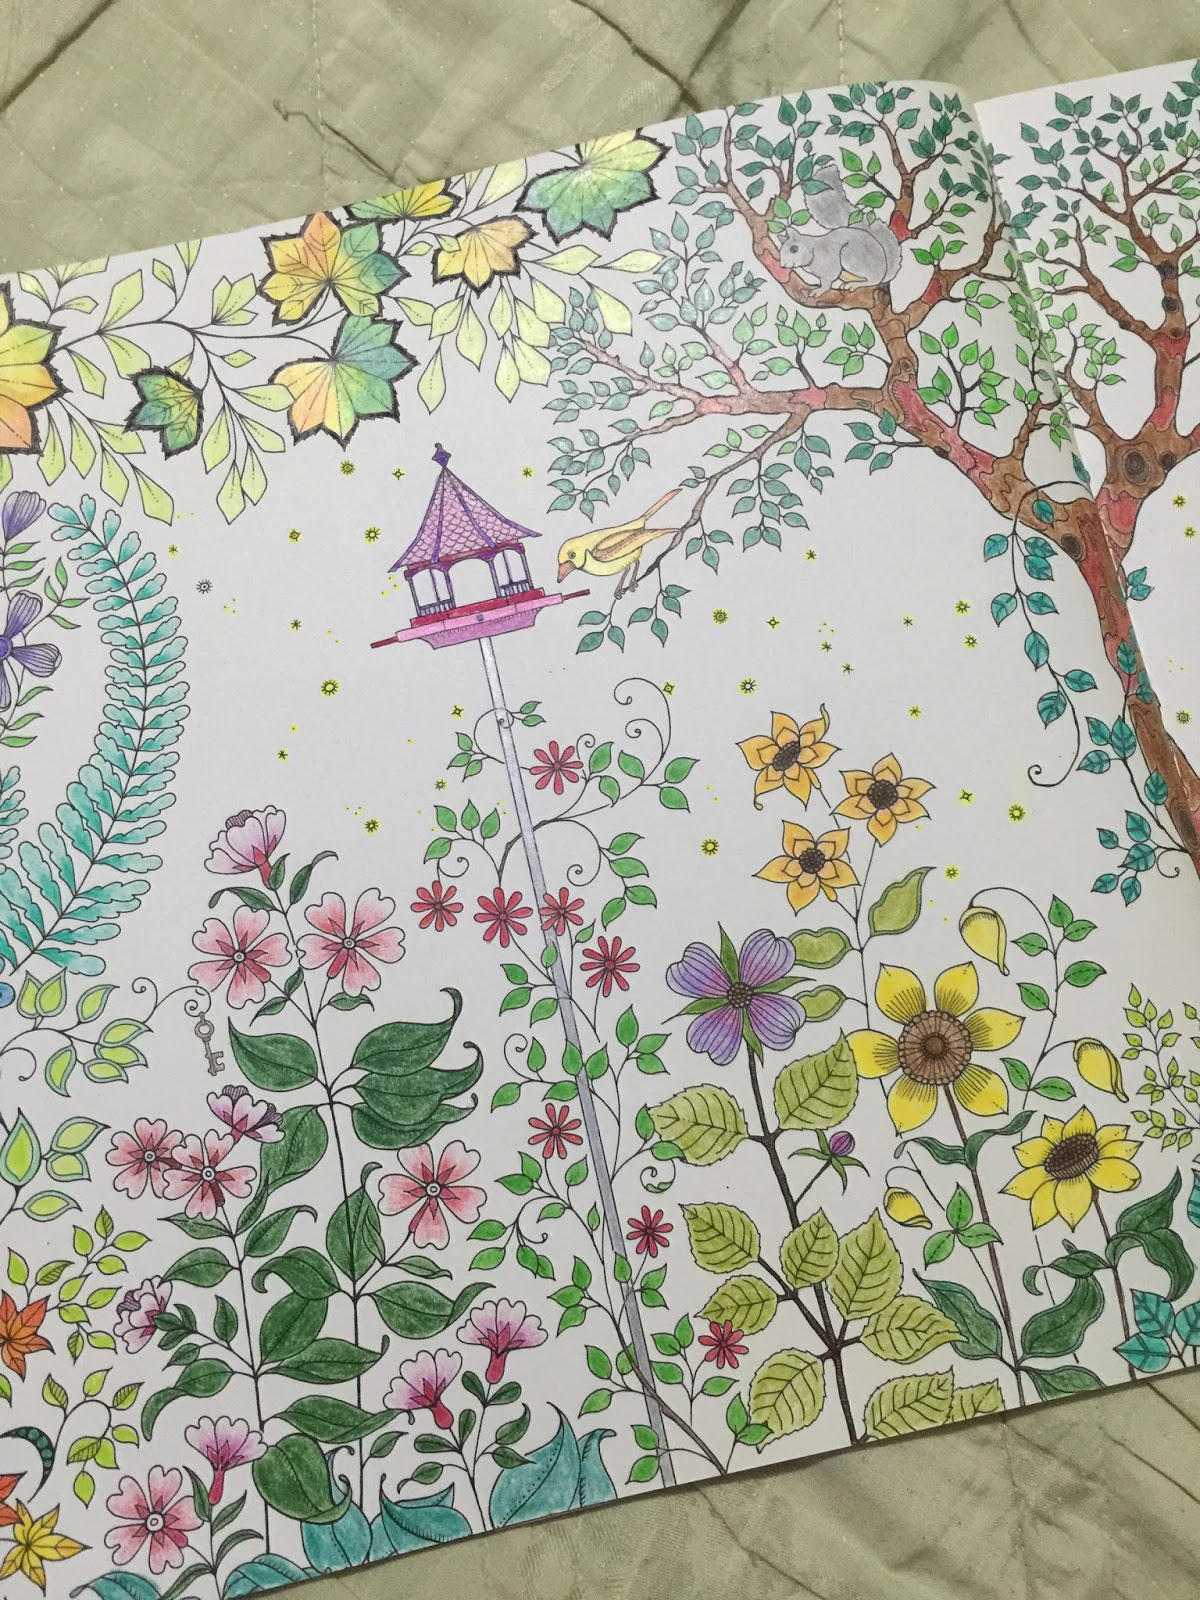 The secret garden coloring book finished - Will Be Back For More